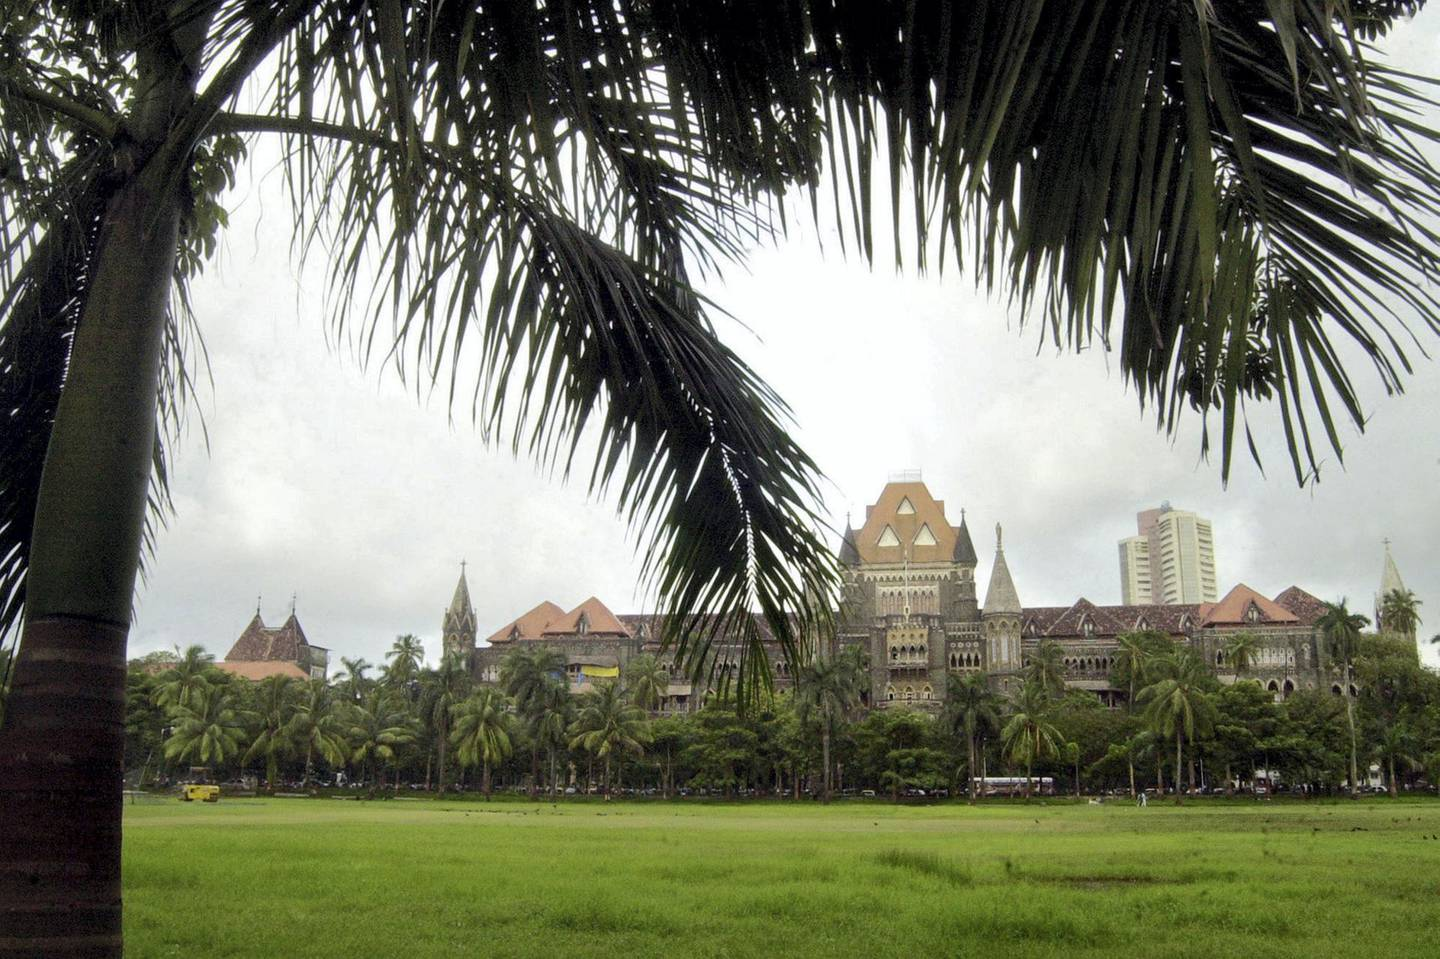 The colonial-era structure of the Bombay High Court stands in Bombay, India, Thursday, Aug 26, 2004. Across India, state governments and civic corporations have struck down old names of cities, but that of Bombay High Court remains the same since changing this requires an Act of India's Parliament. Countries like India, China, South Africa, Bangladesh and Sri Lanka have experienced re-naming bouts where colonial names have been altered. (AP Photo/Rajesh Nirgude)